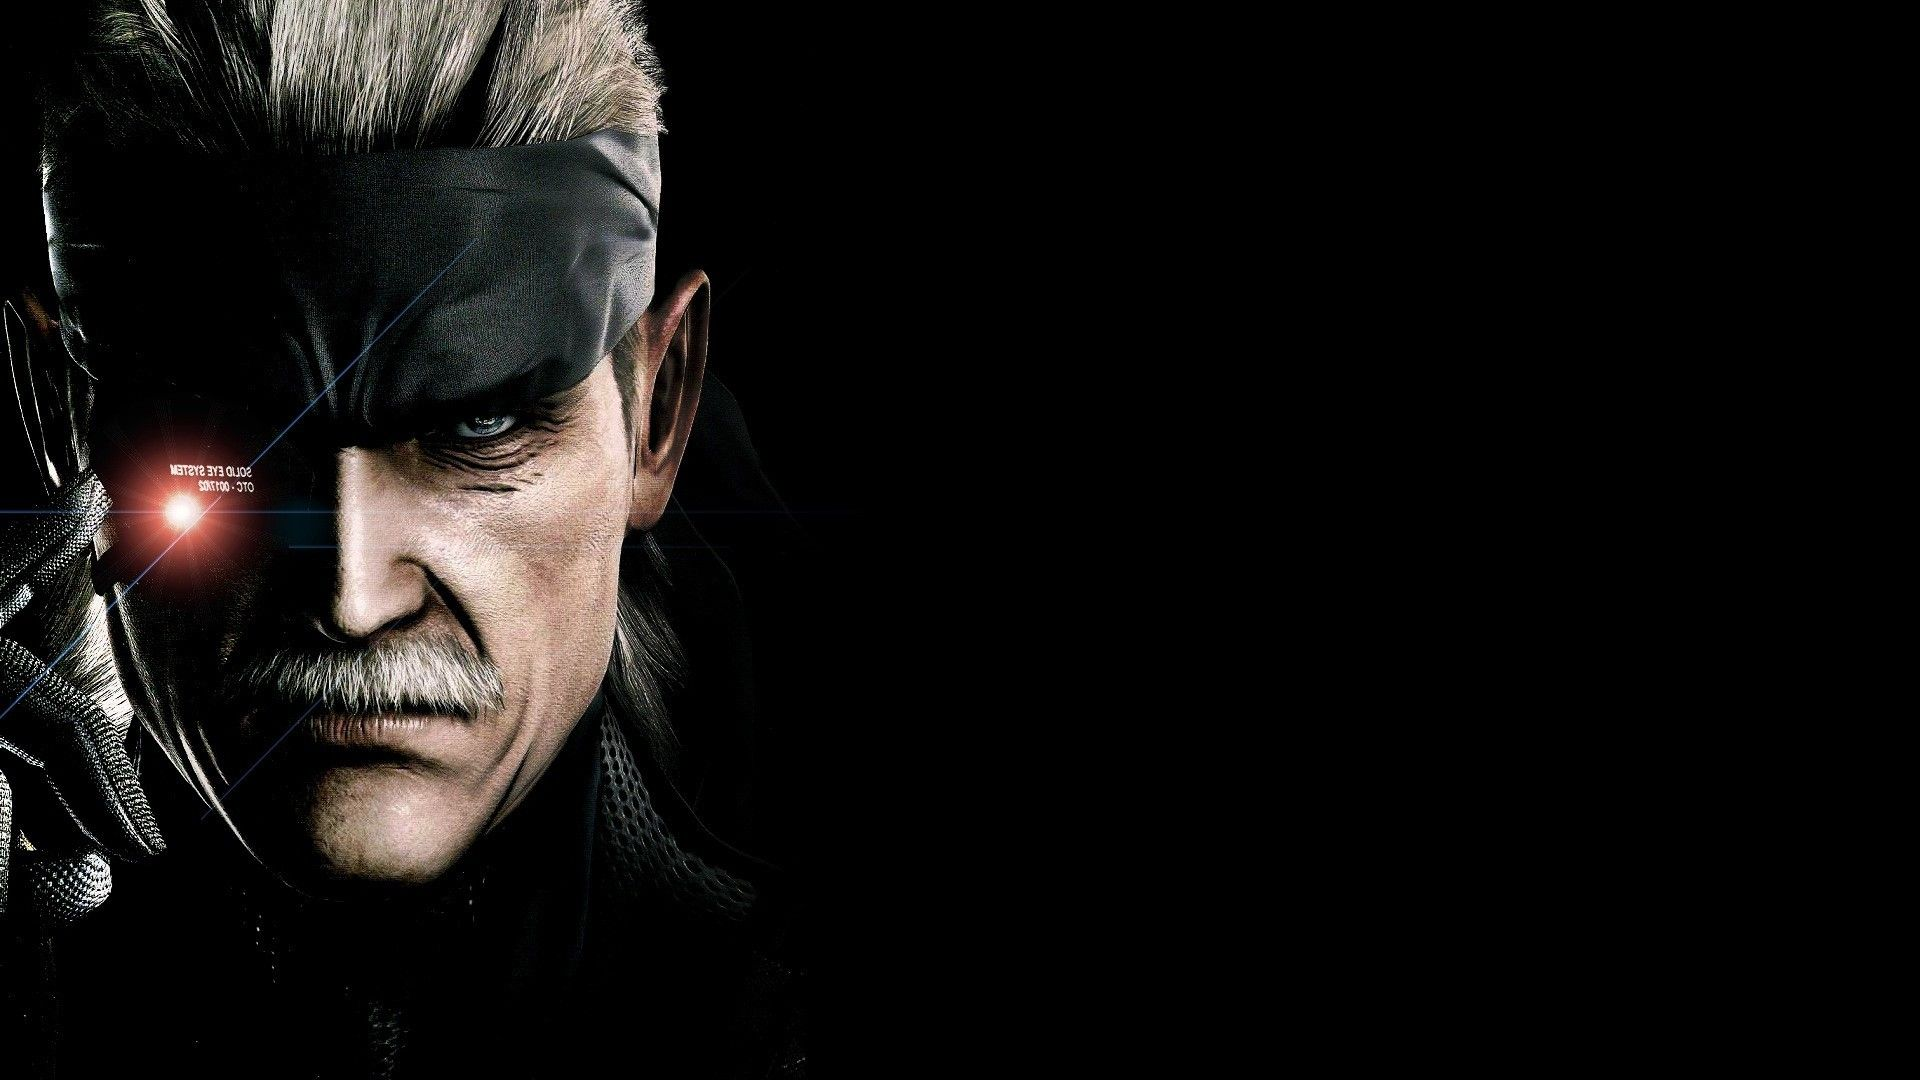 Metal Gear Solid Wallpaper Metal Gear Solid V Video Game